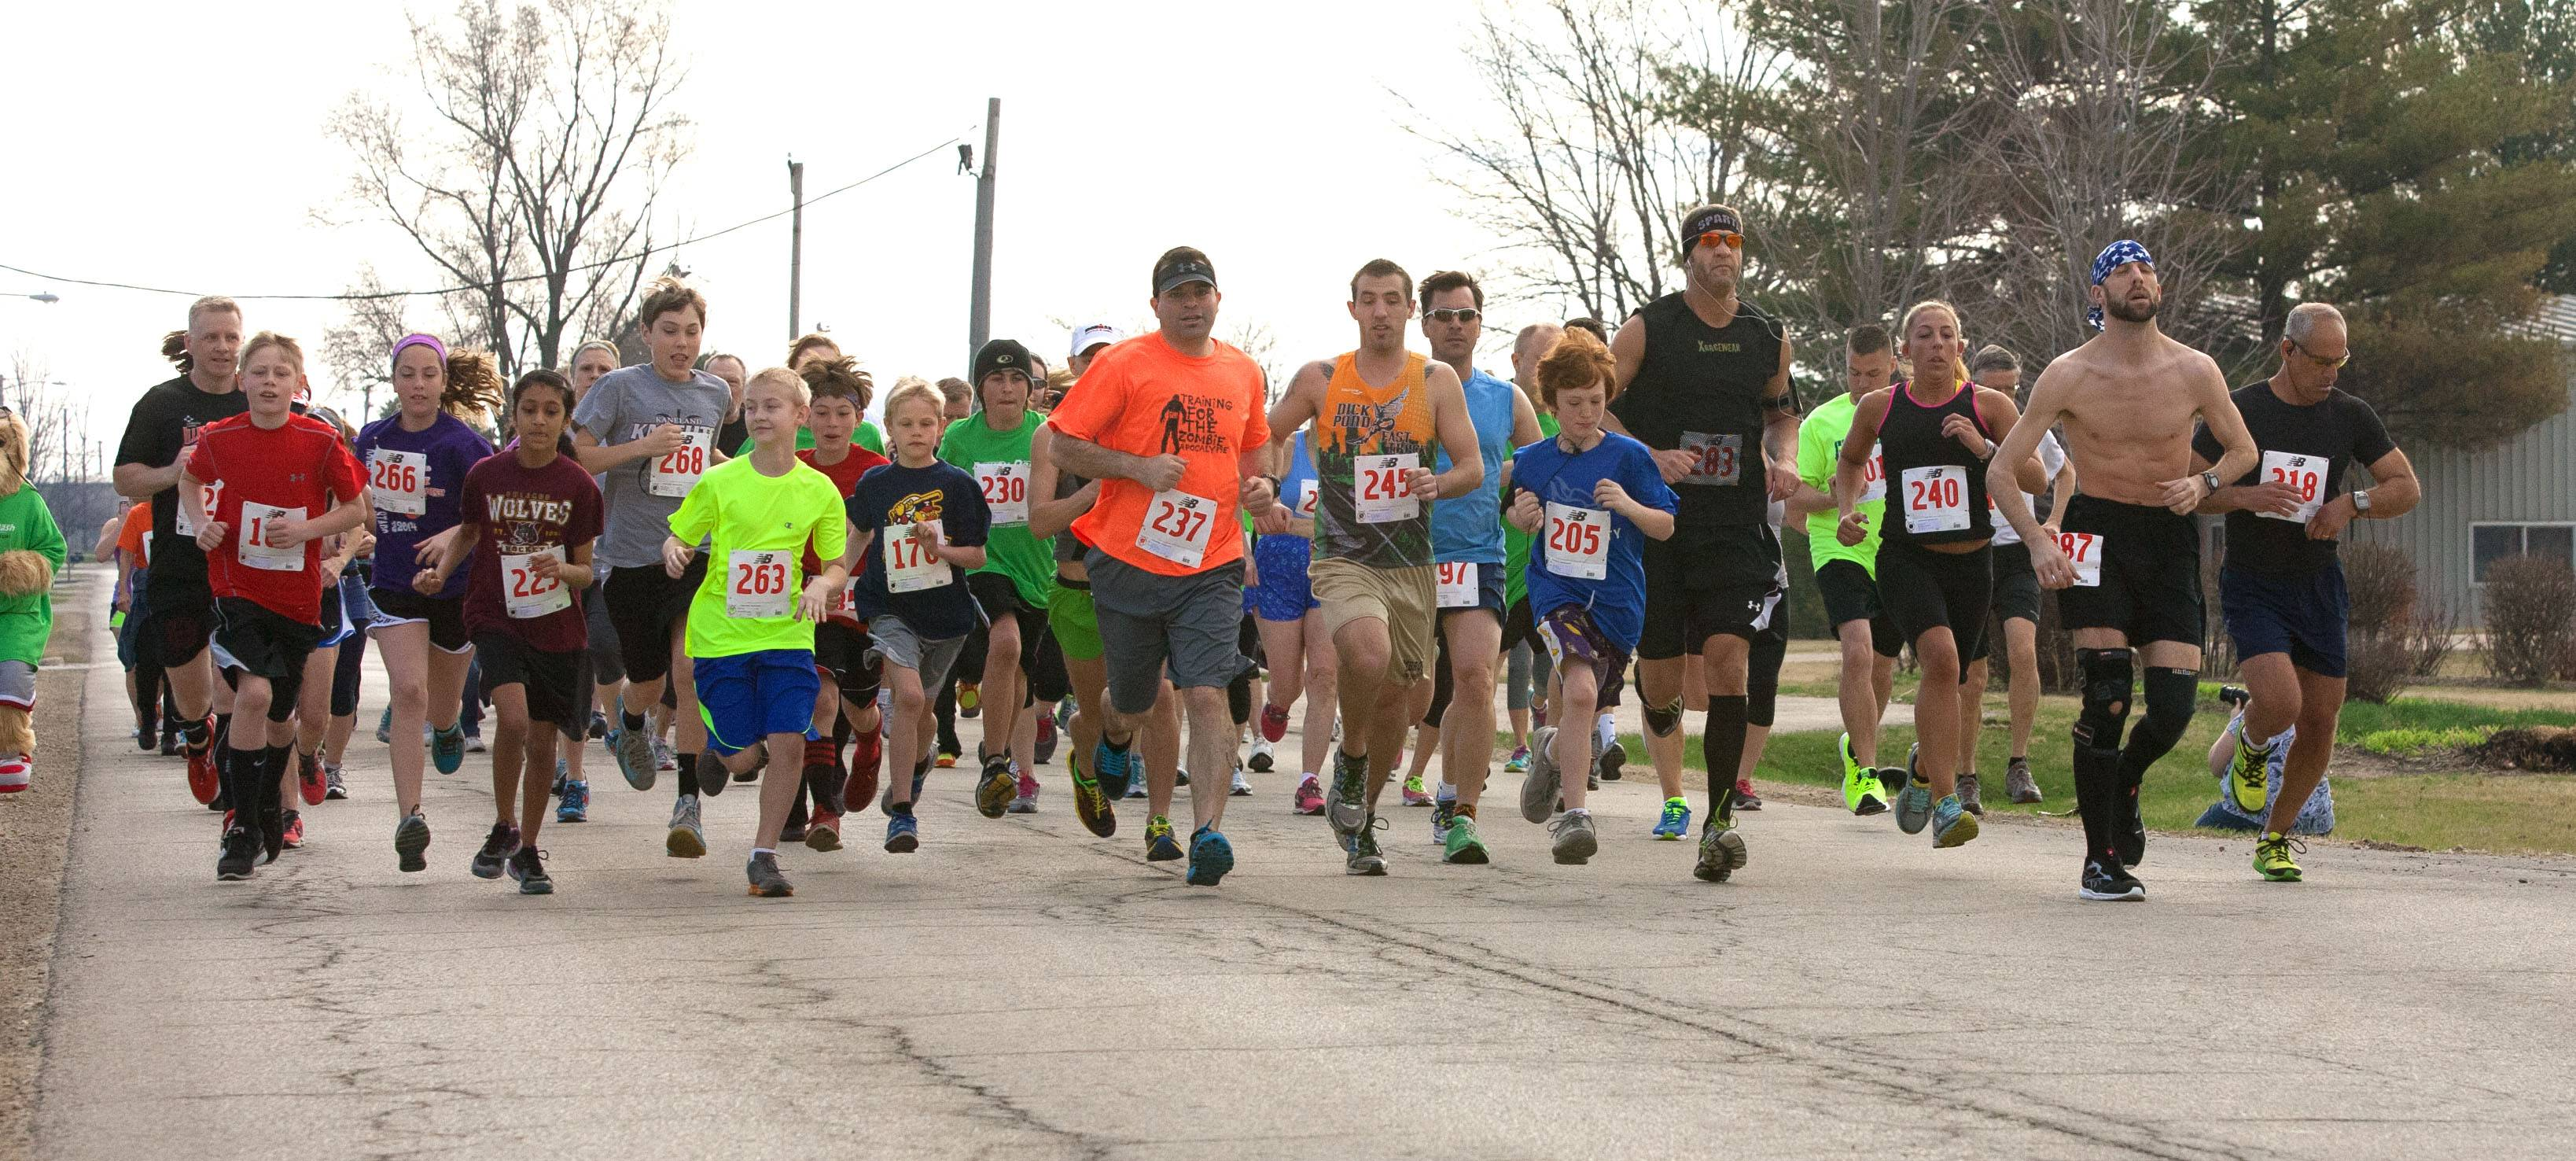 Participants start the 10th annual Dewey Dash race held in downtown Elburn.